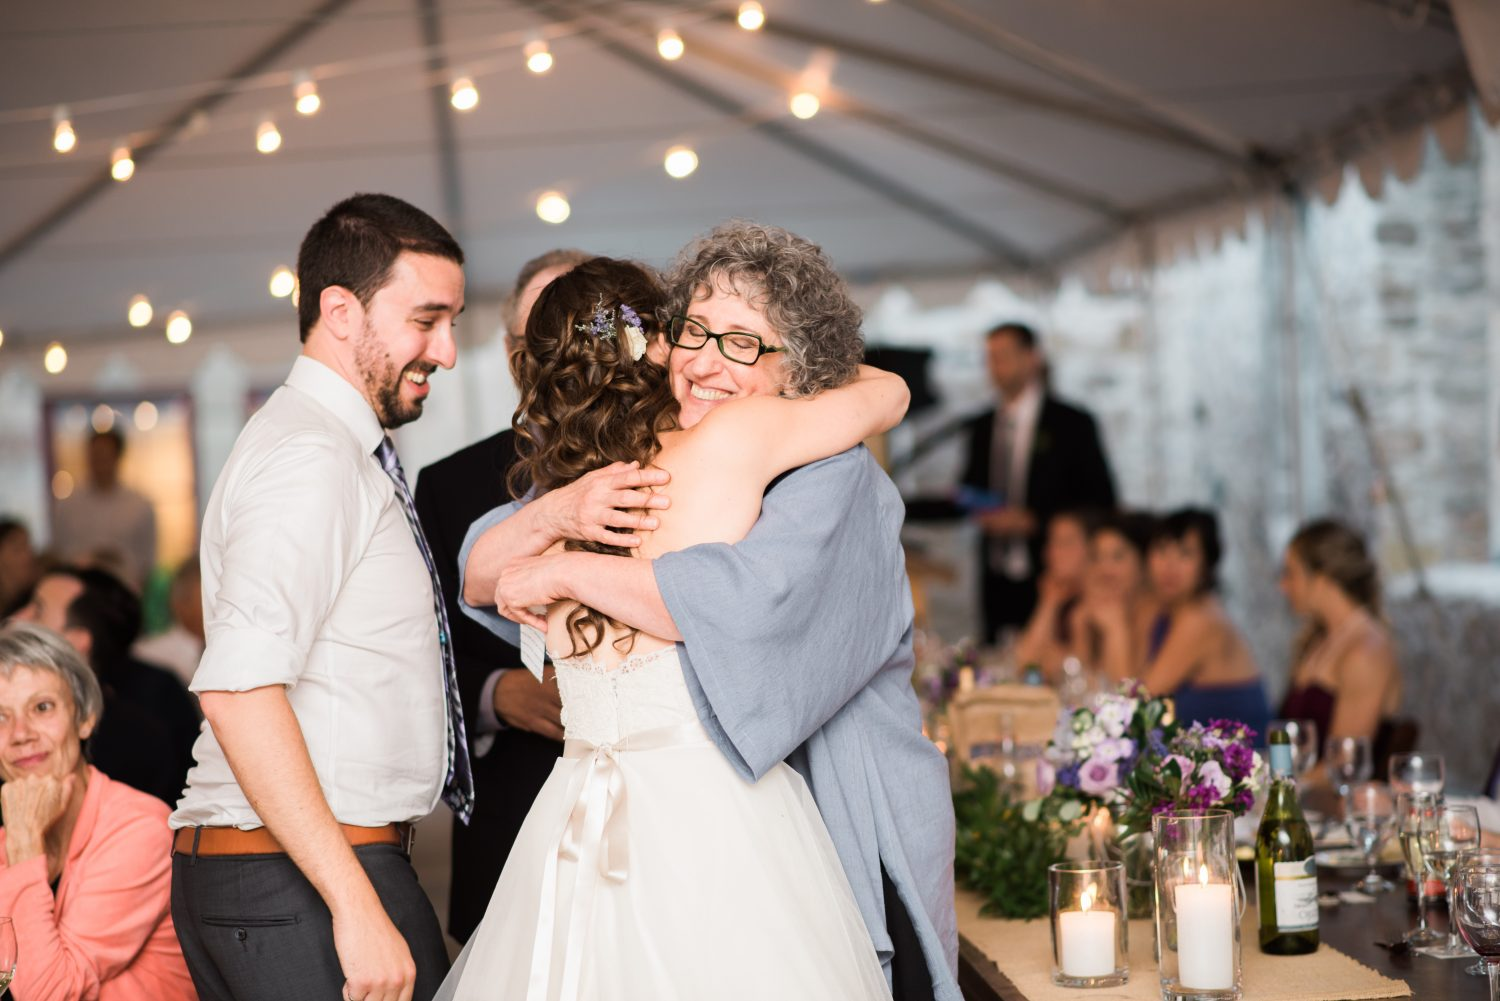 Mother of groom hugs bride after her speech